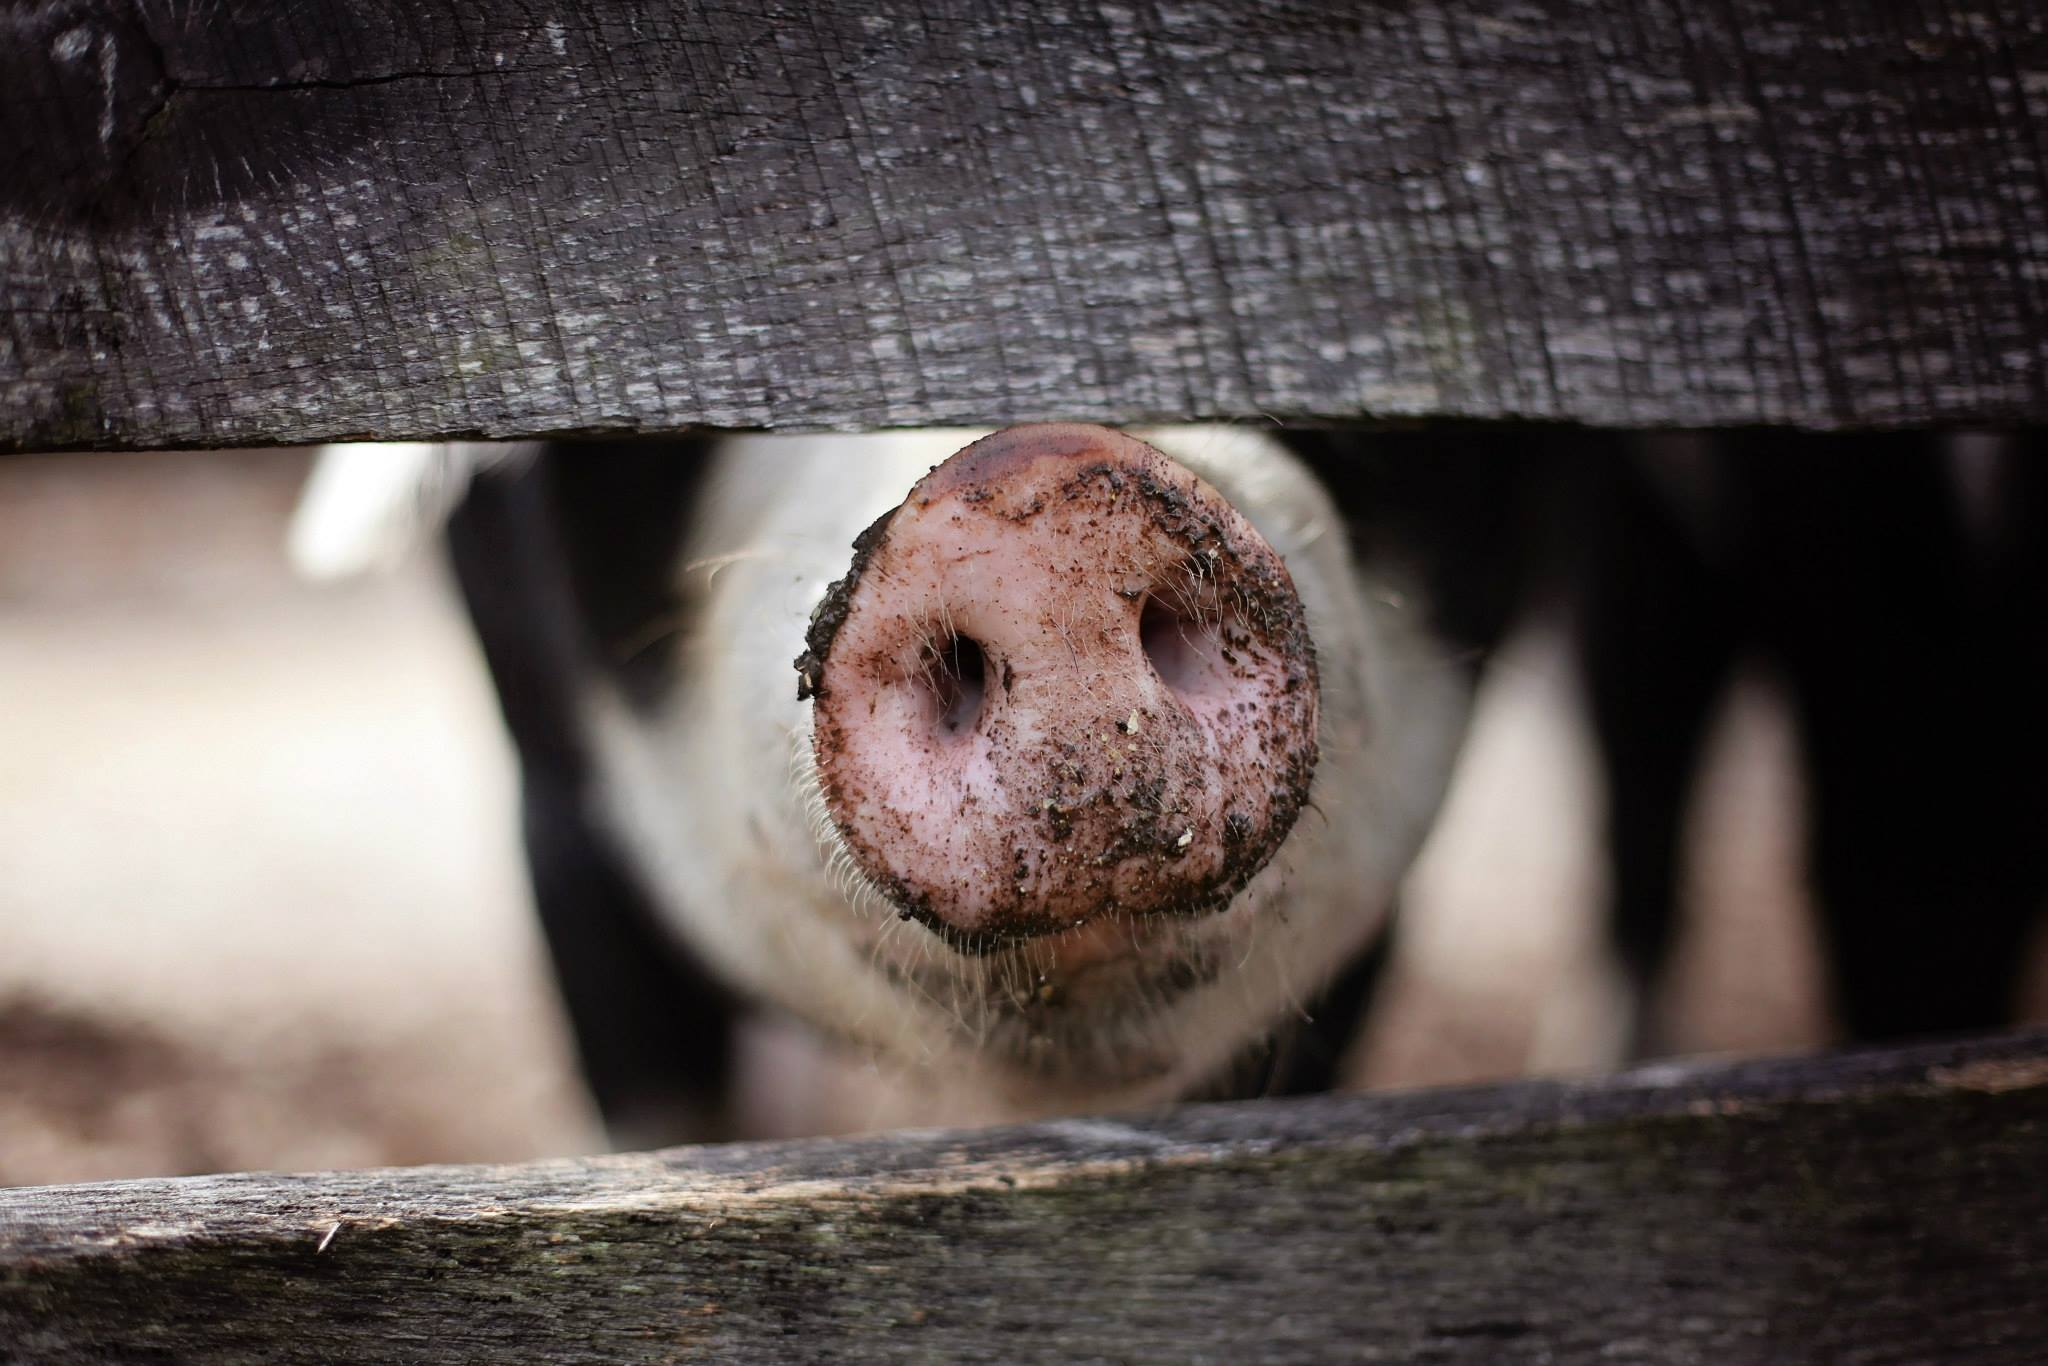 The OIE's standards aim to improve the welfare of farm animals